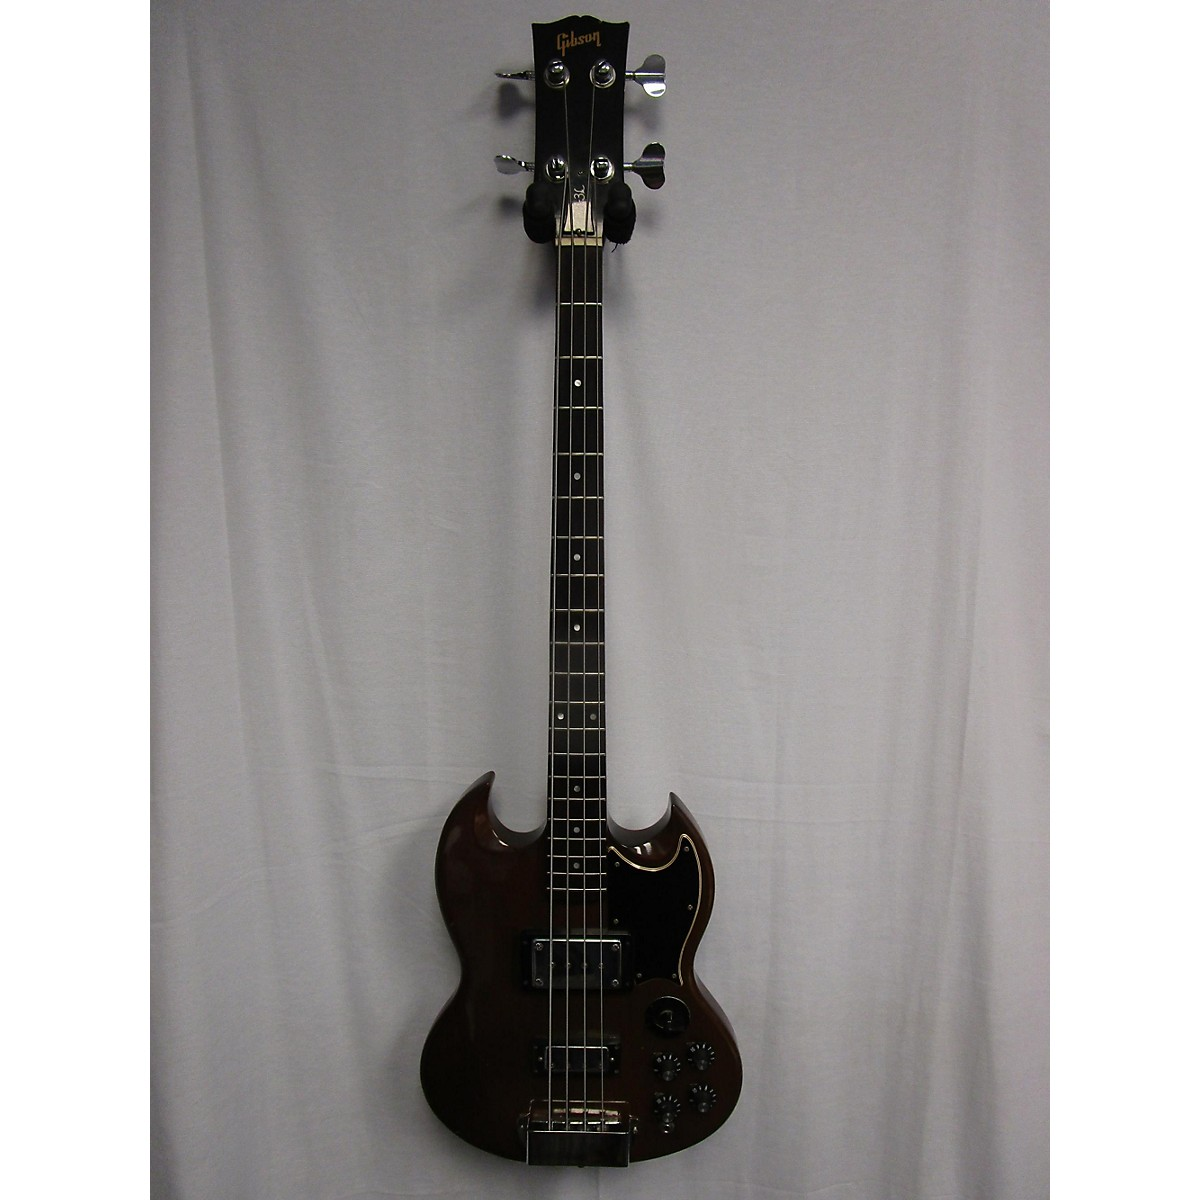 Gibson 1970s Eb3l Electric Bass Guitar